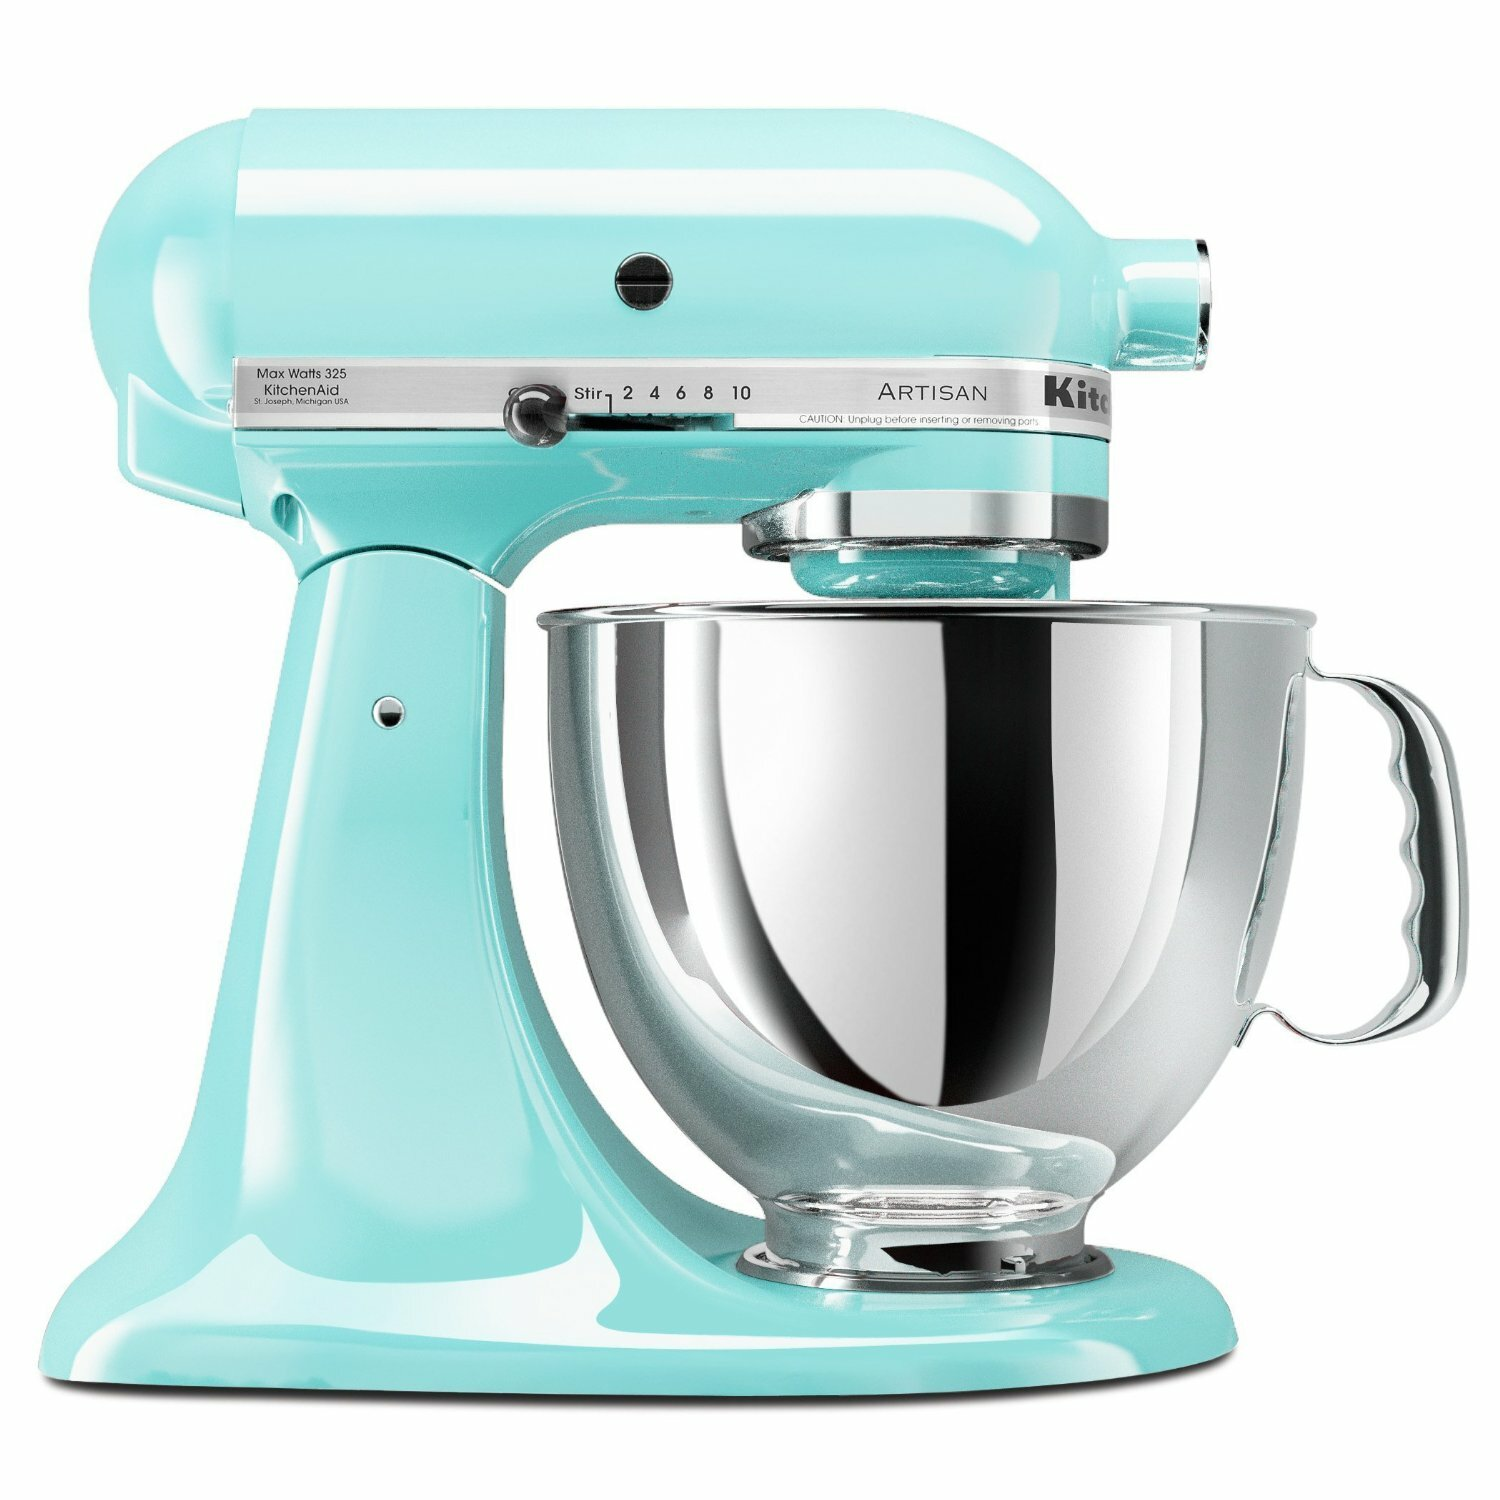 KitchenAid Artisan 5 Qt. Stand Mixer with Pouring Shield - KSM150PS ...